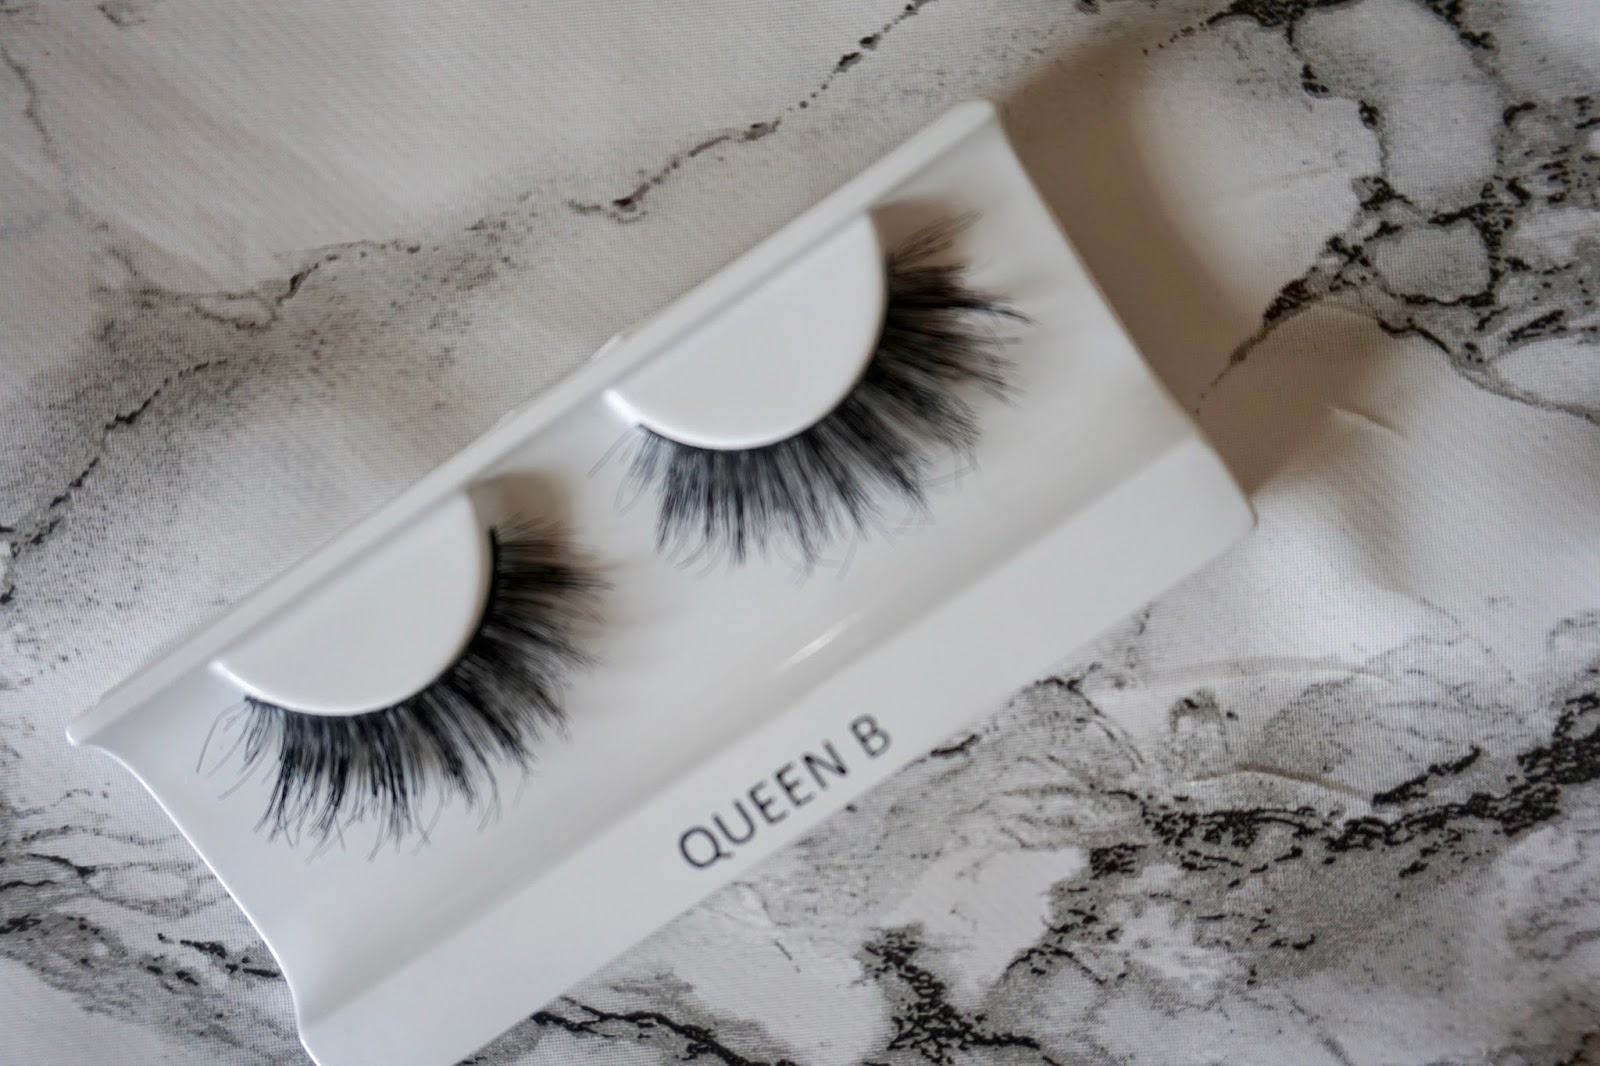 0ce9c38dc3b If, like me, you're an avid watcher of both Lustrelux (Katy's) and Desi  Perkins' Youtube and Snapchats, you'll know the Koko lashes in Queen B are  featured ...